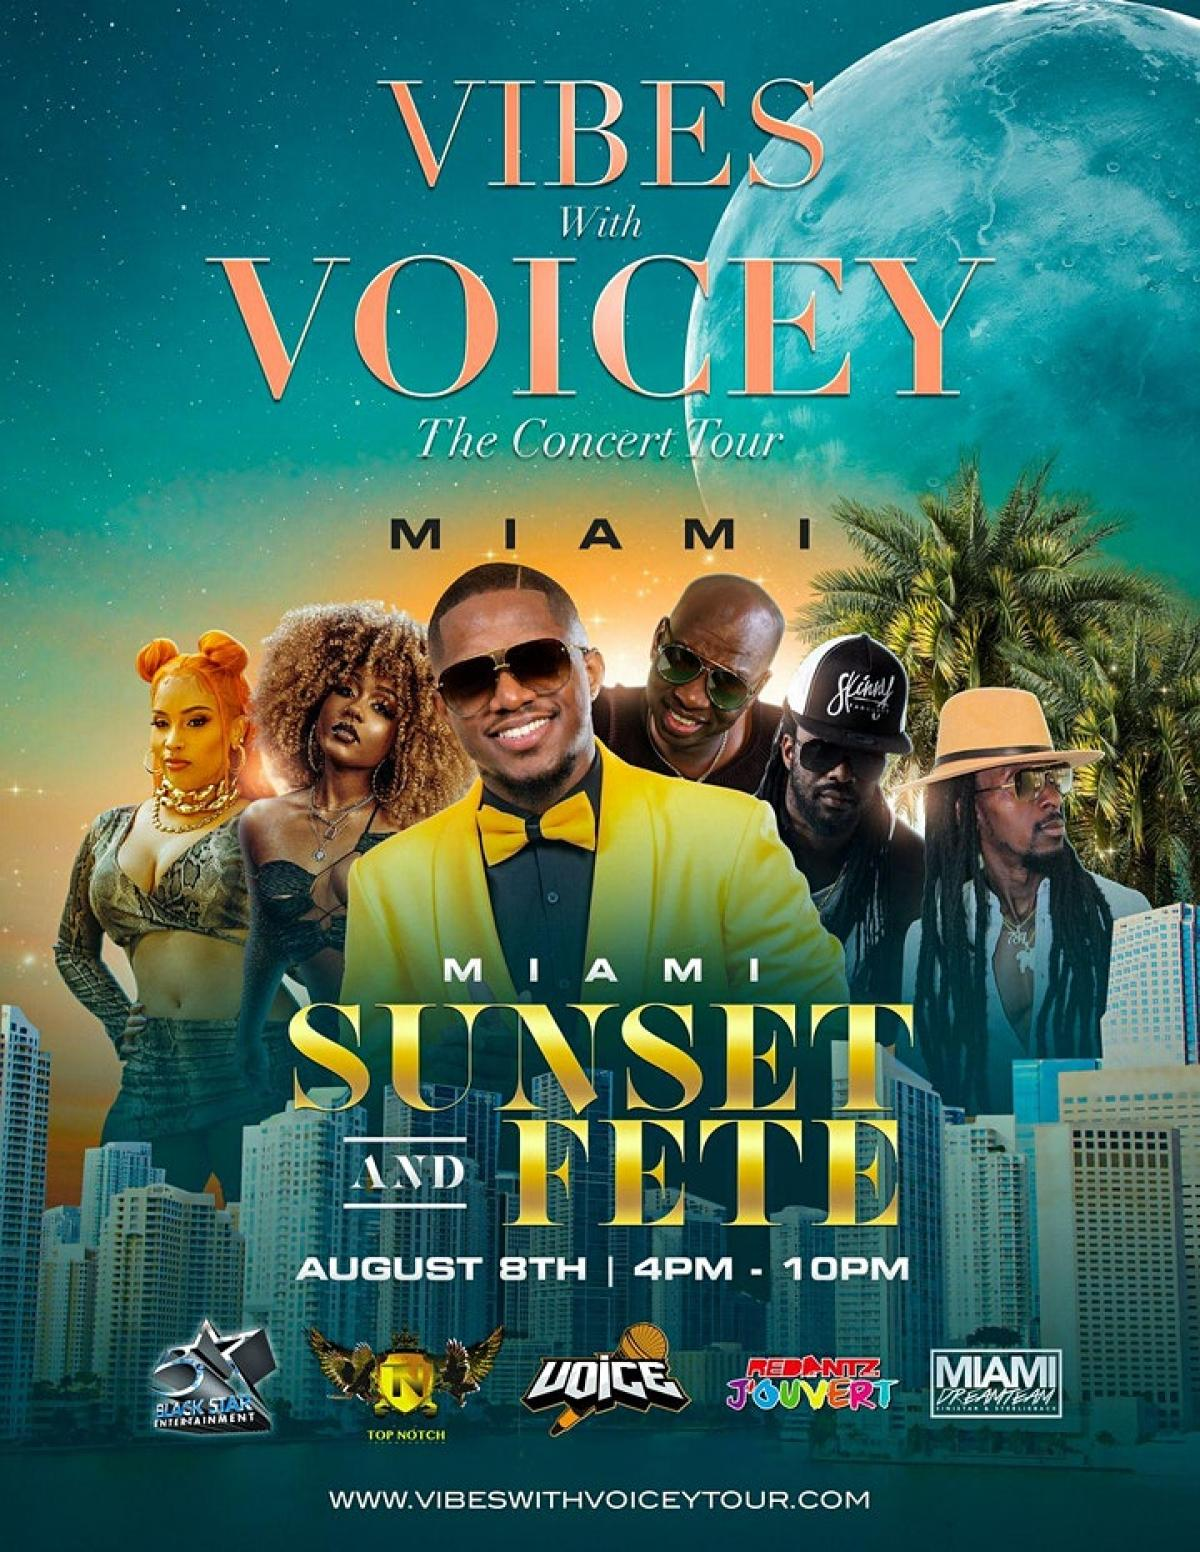 Vibes With Voicey: The Concert Tour Miami flyer or graphic.